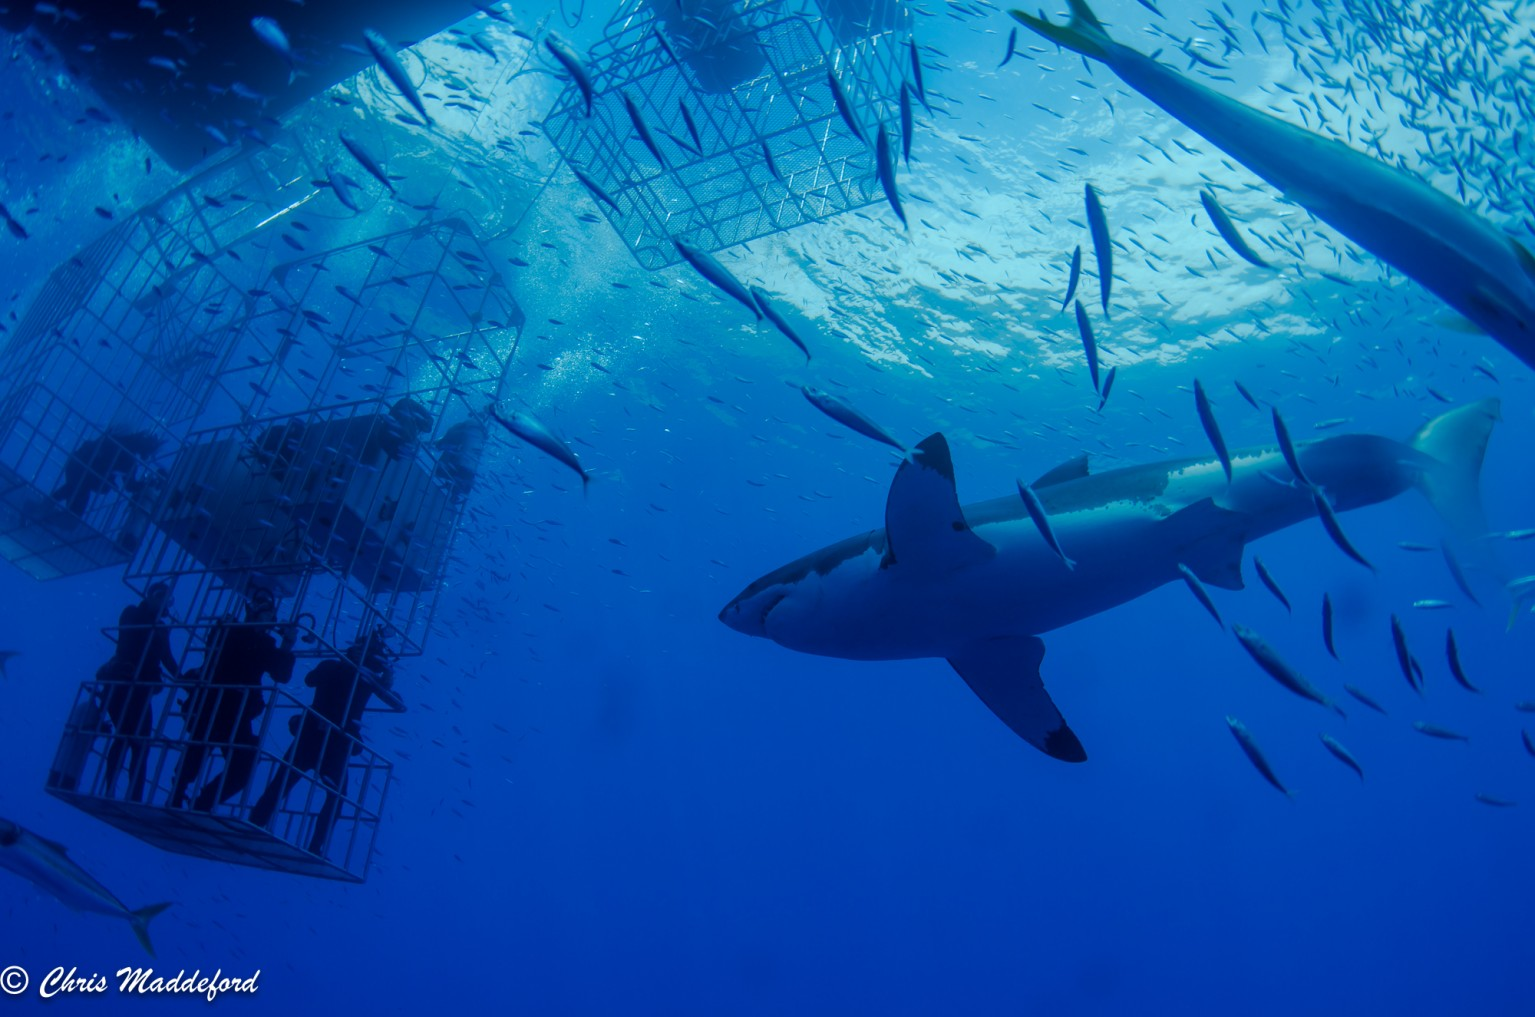 diver looking up from the submersible cage at a great white shark